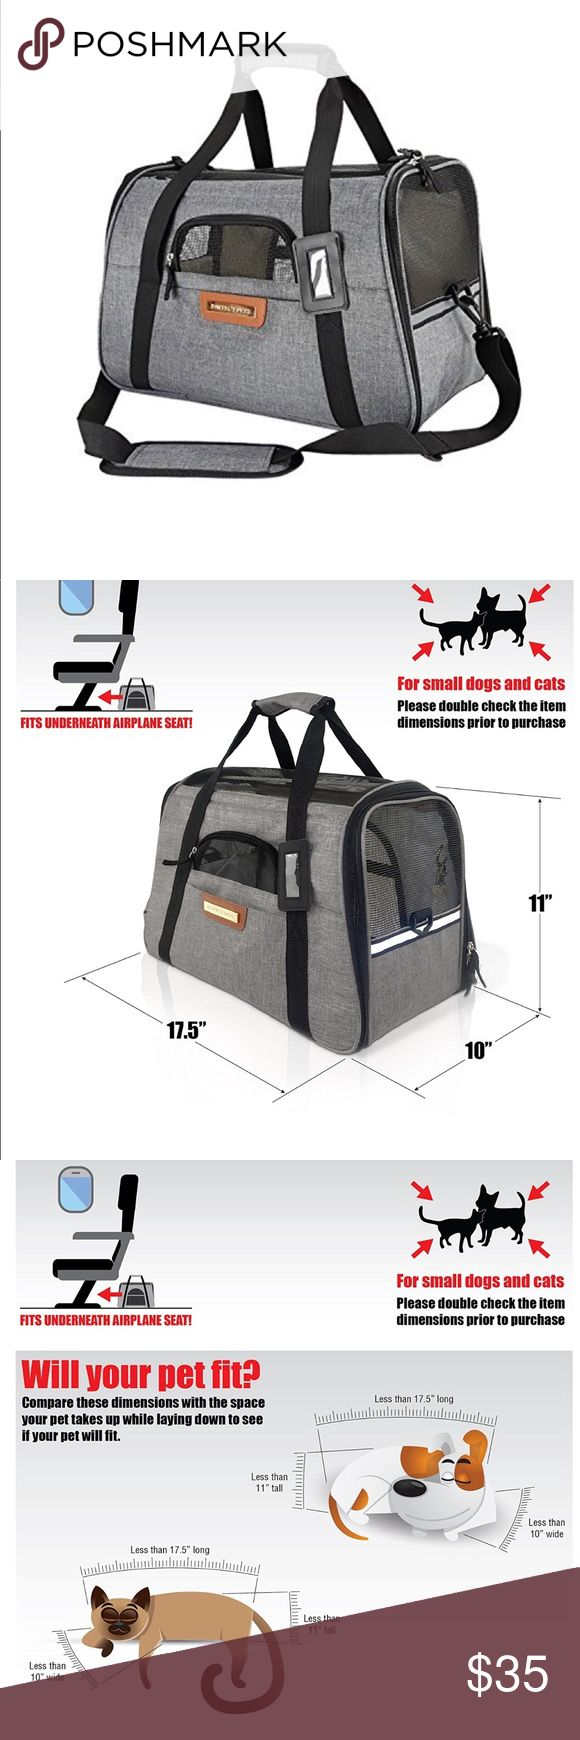 "Pet Travel Carrier Bag New with the original packaging. KEEP YOUR SMALL PET WITH YOU ON FLIGHTS- Small cats, tiny dogs and toy breeds find this carrier spacious and comfortable for airline and car travel. The soft-sided in-cabin pet carrier is approved by most major airlines. Fits under your seat. Carrier measures 17.5""L x 10""W x 11""H. Other"